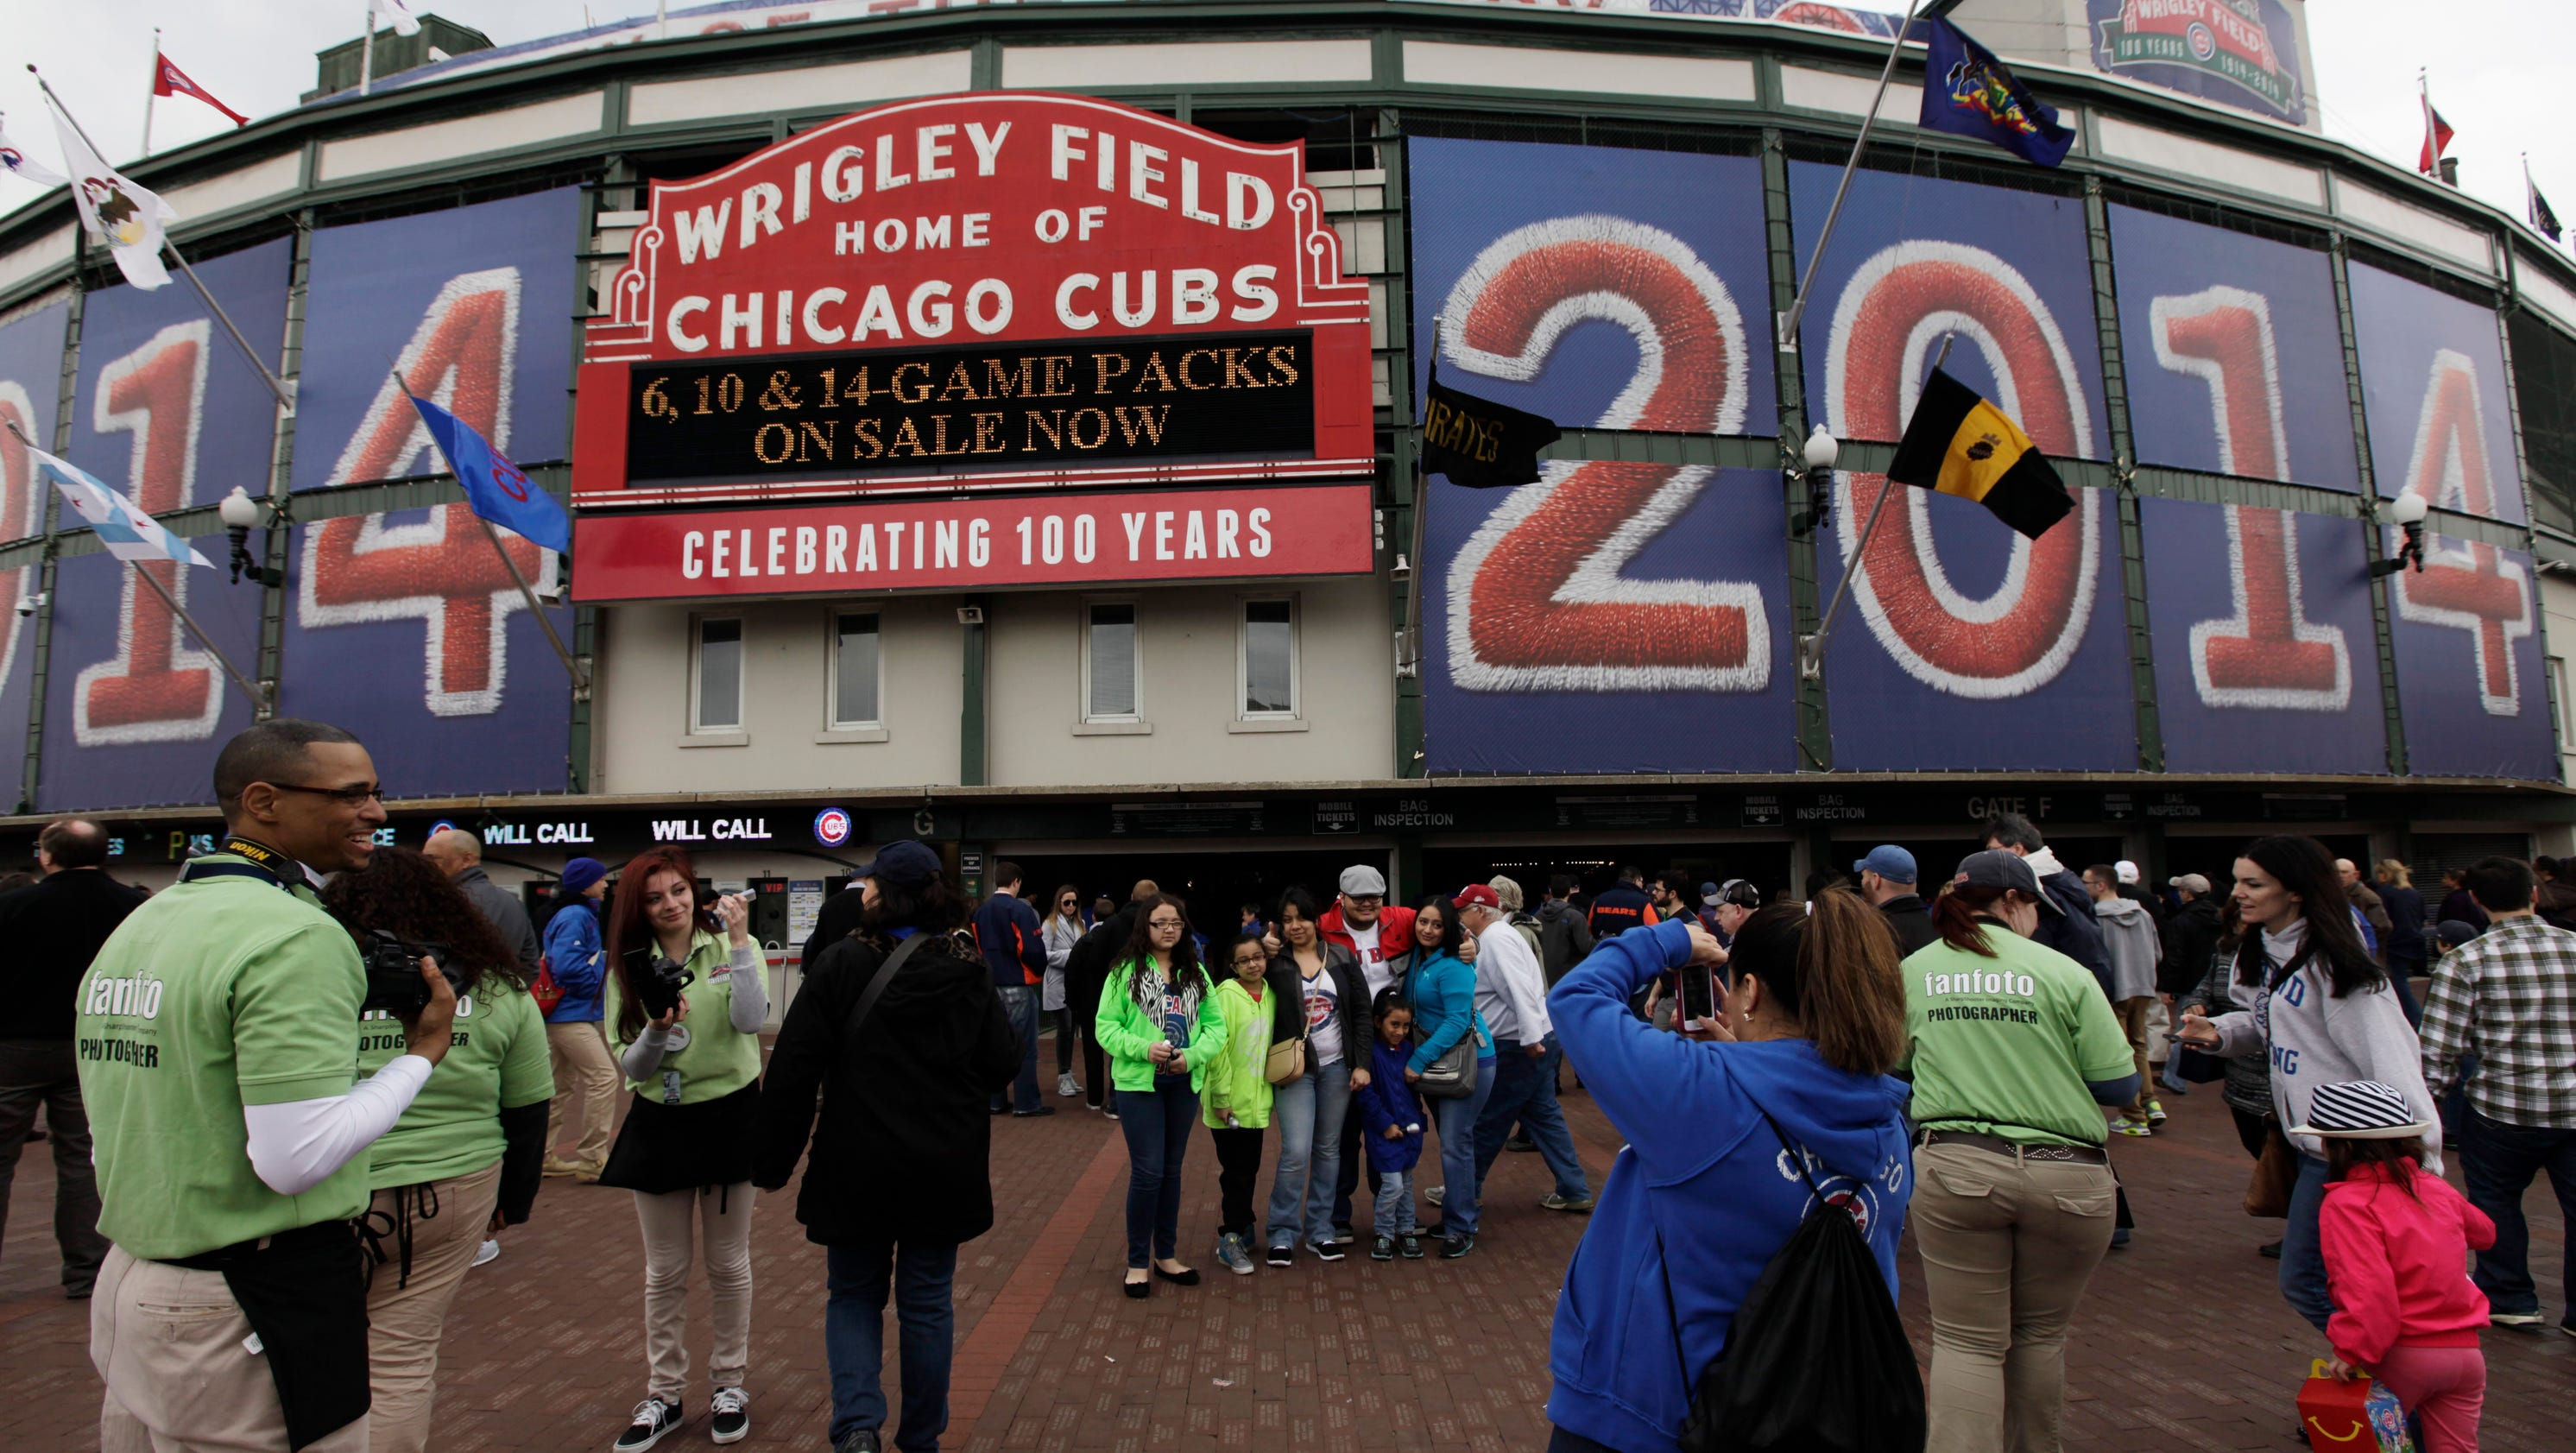 wrigley chatrooms About /r/videos chat  drunk guy uses wrigley field men's room trough as a slip and slide yep  this has been proven to be not wrigley field i forget the .